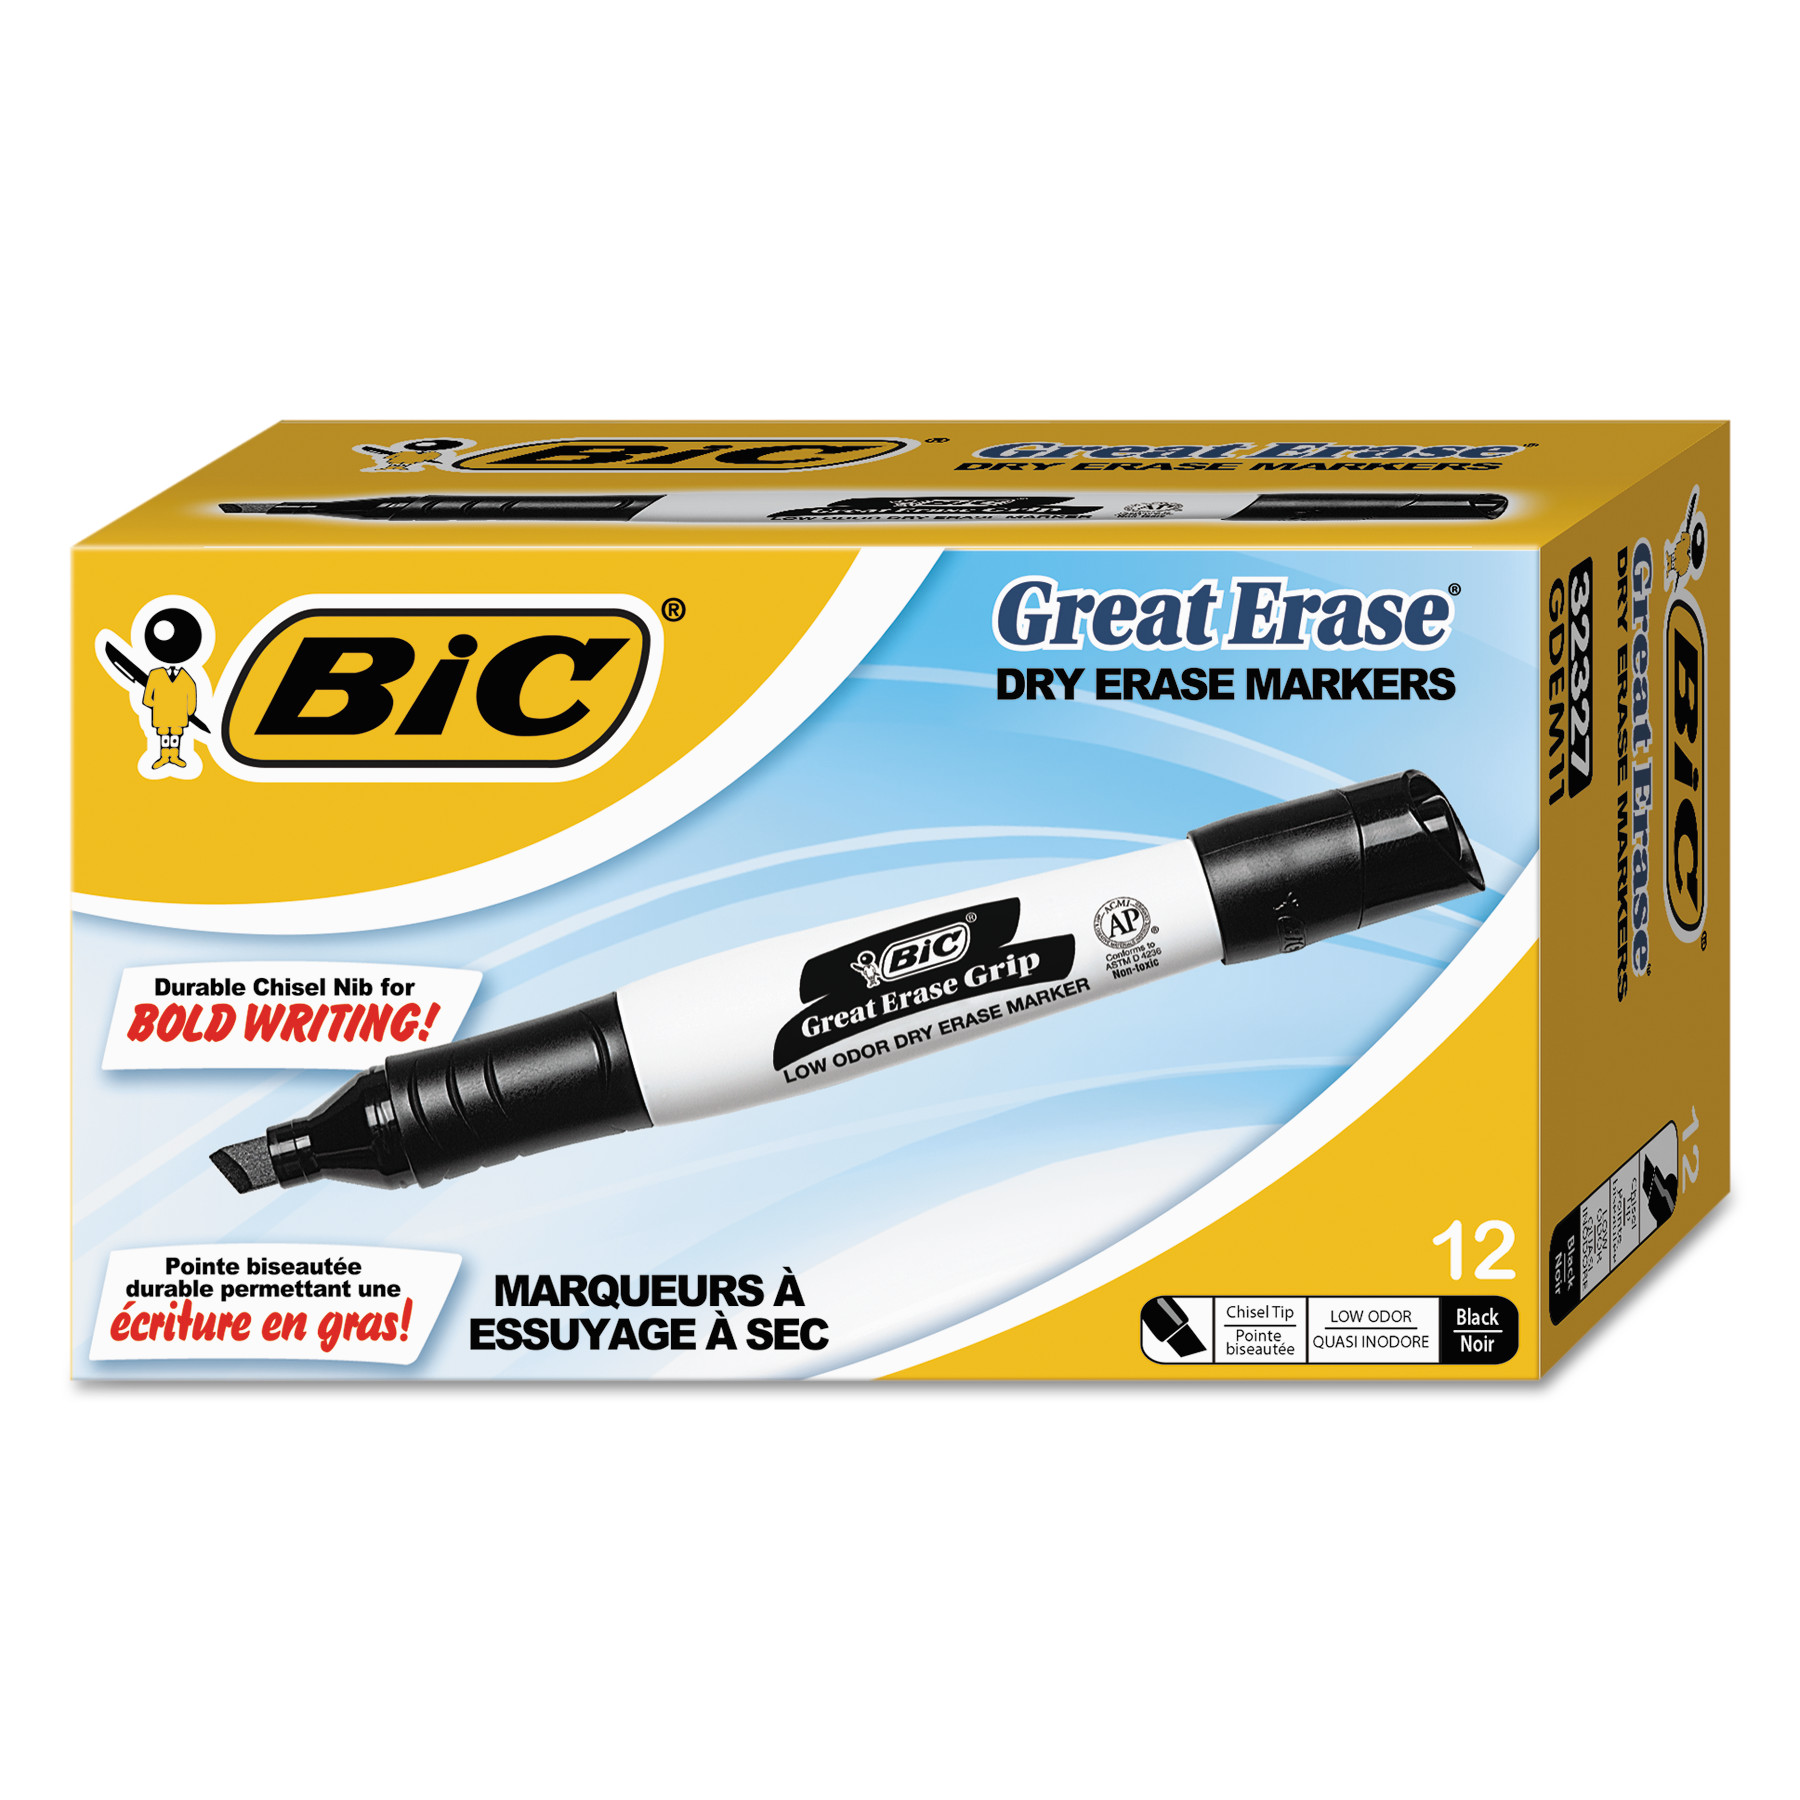 BIC Great Erase Grip Dry Erase Marker, Tank Style, Chisel Tip, Black, 12 Count by BIC USA, Inc.